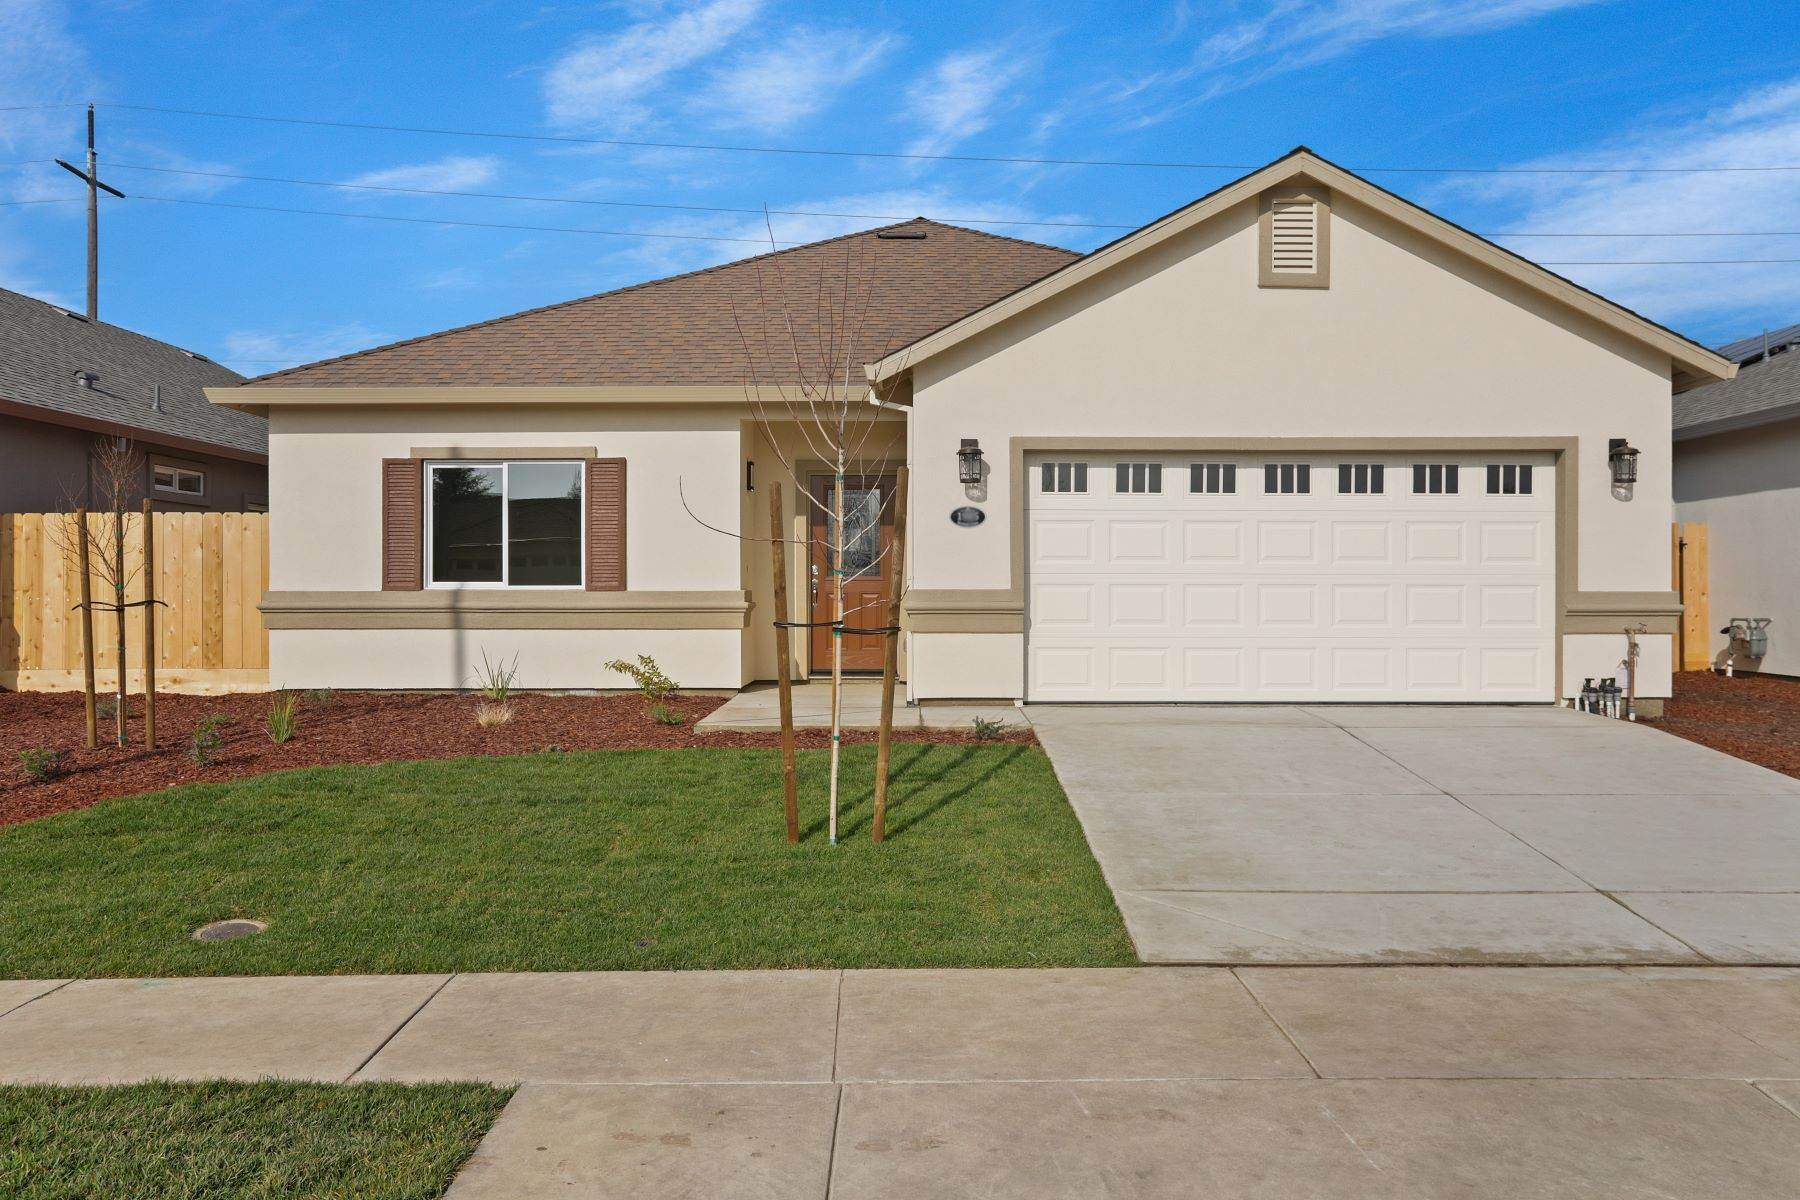 2. Single Family Homes for Sale at 3017 Malisa Way, Stockton 3017 Malisa Way Stockton, California 95206 United States